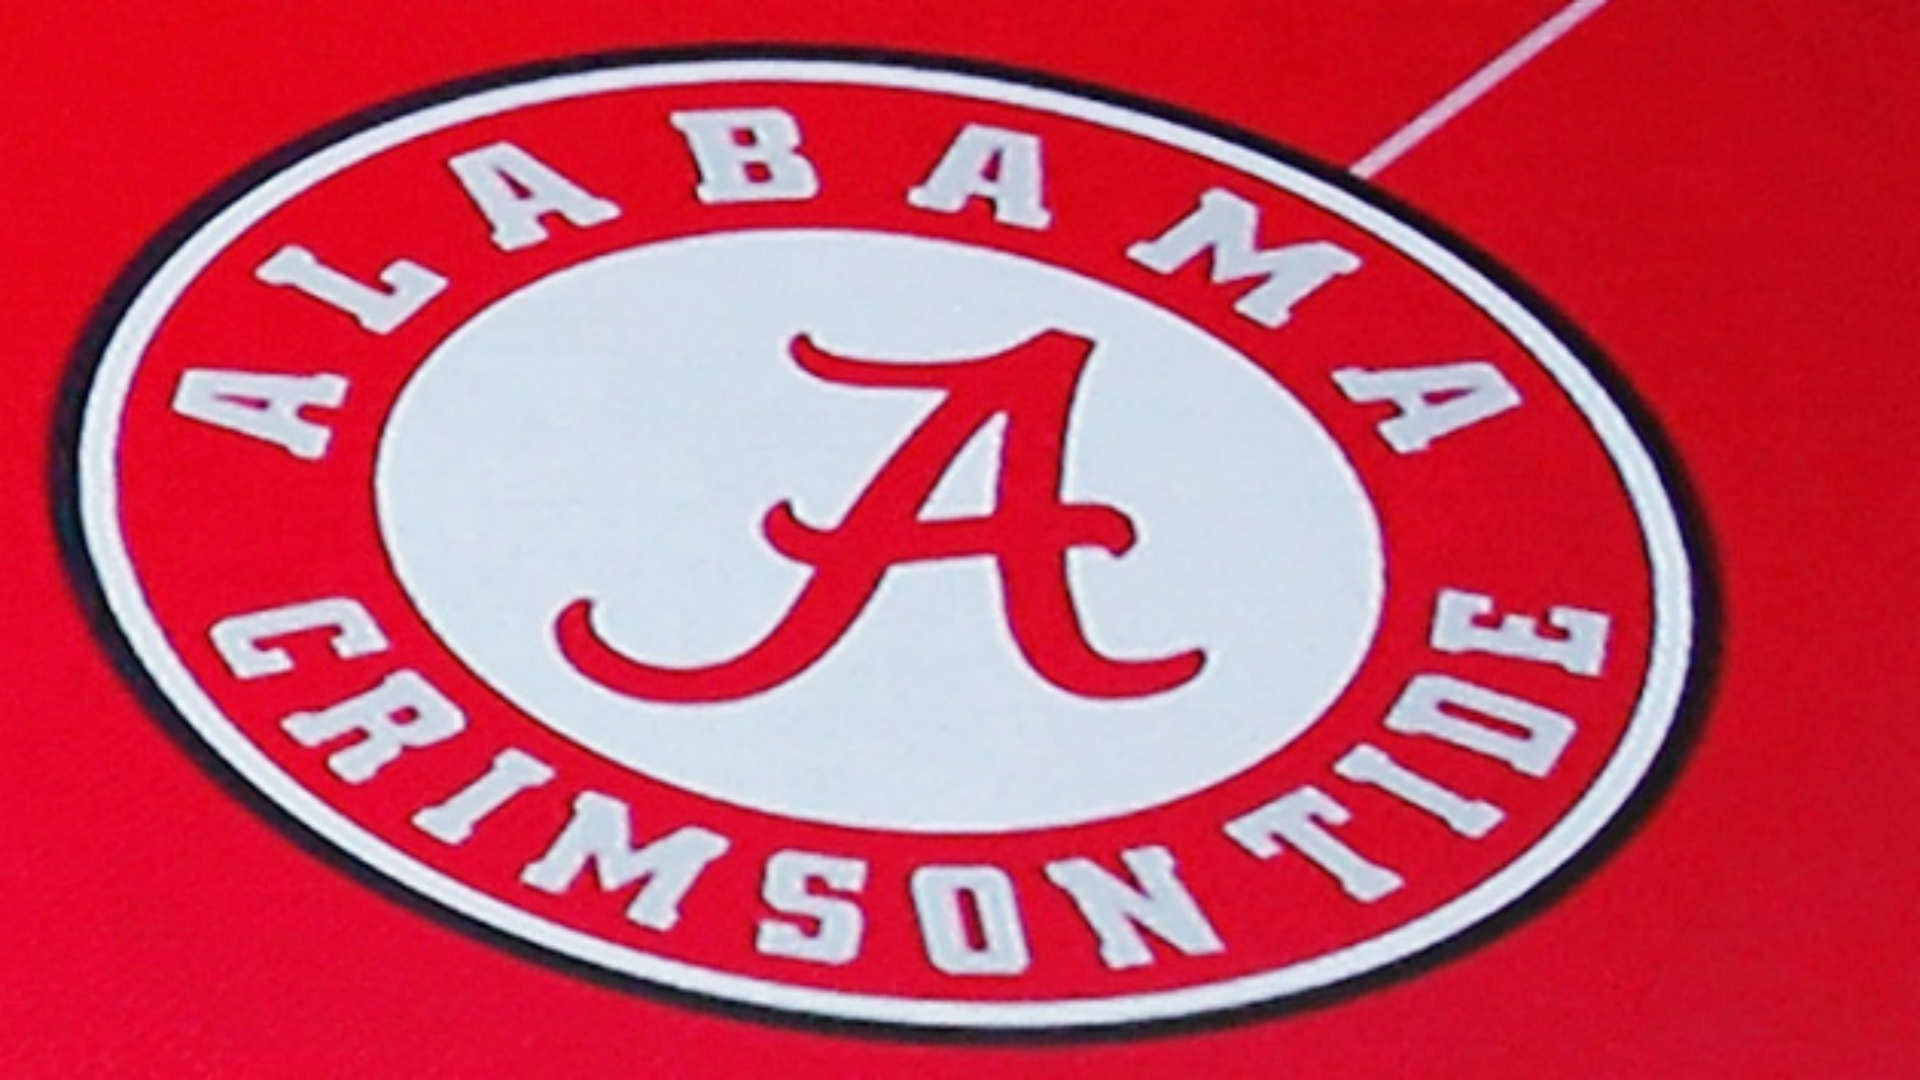 Alabama fires baseball coach after 1 season